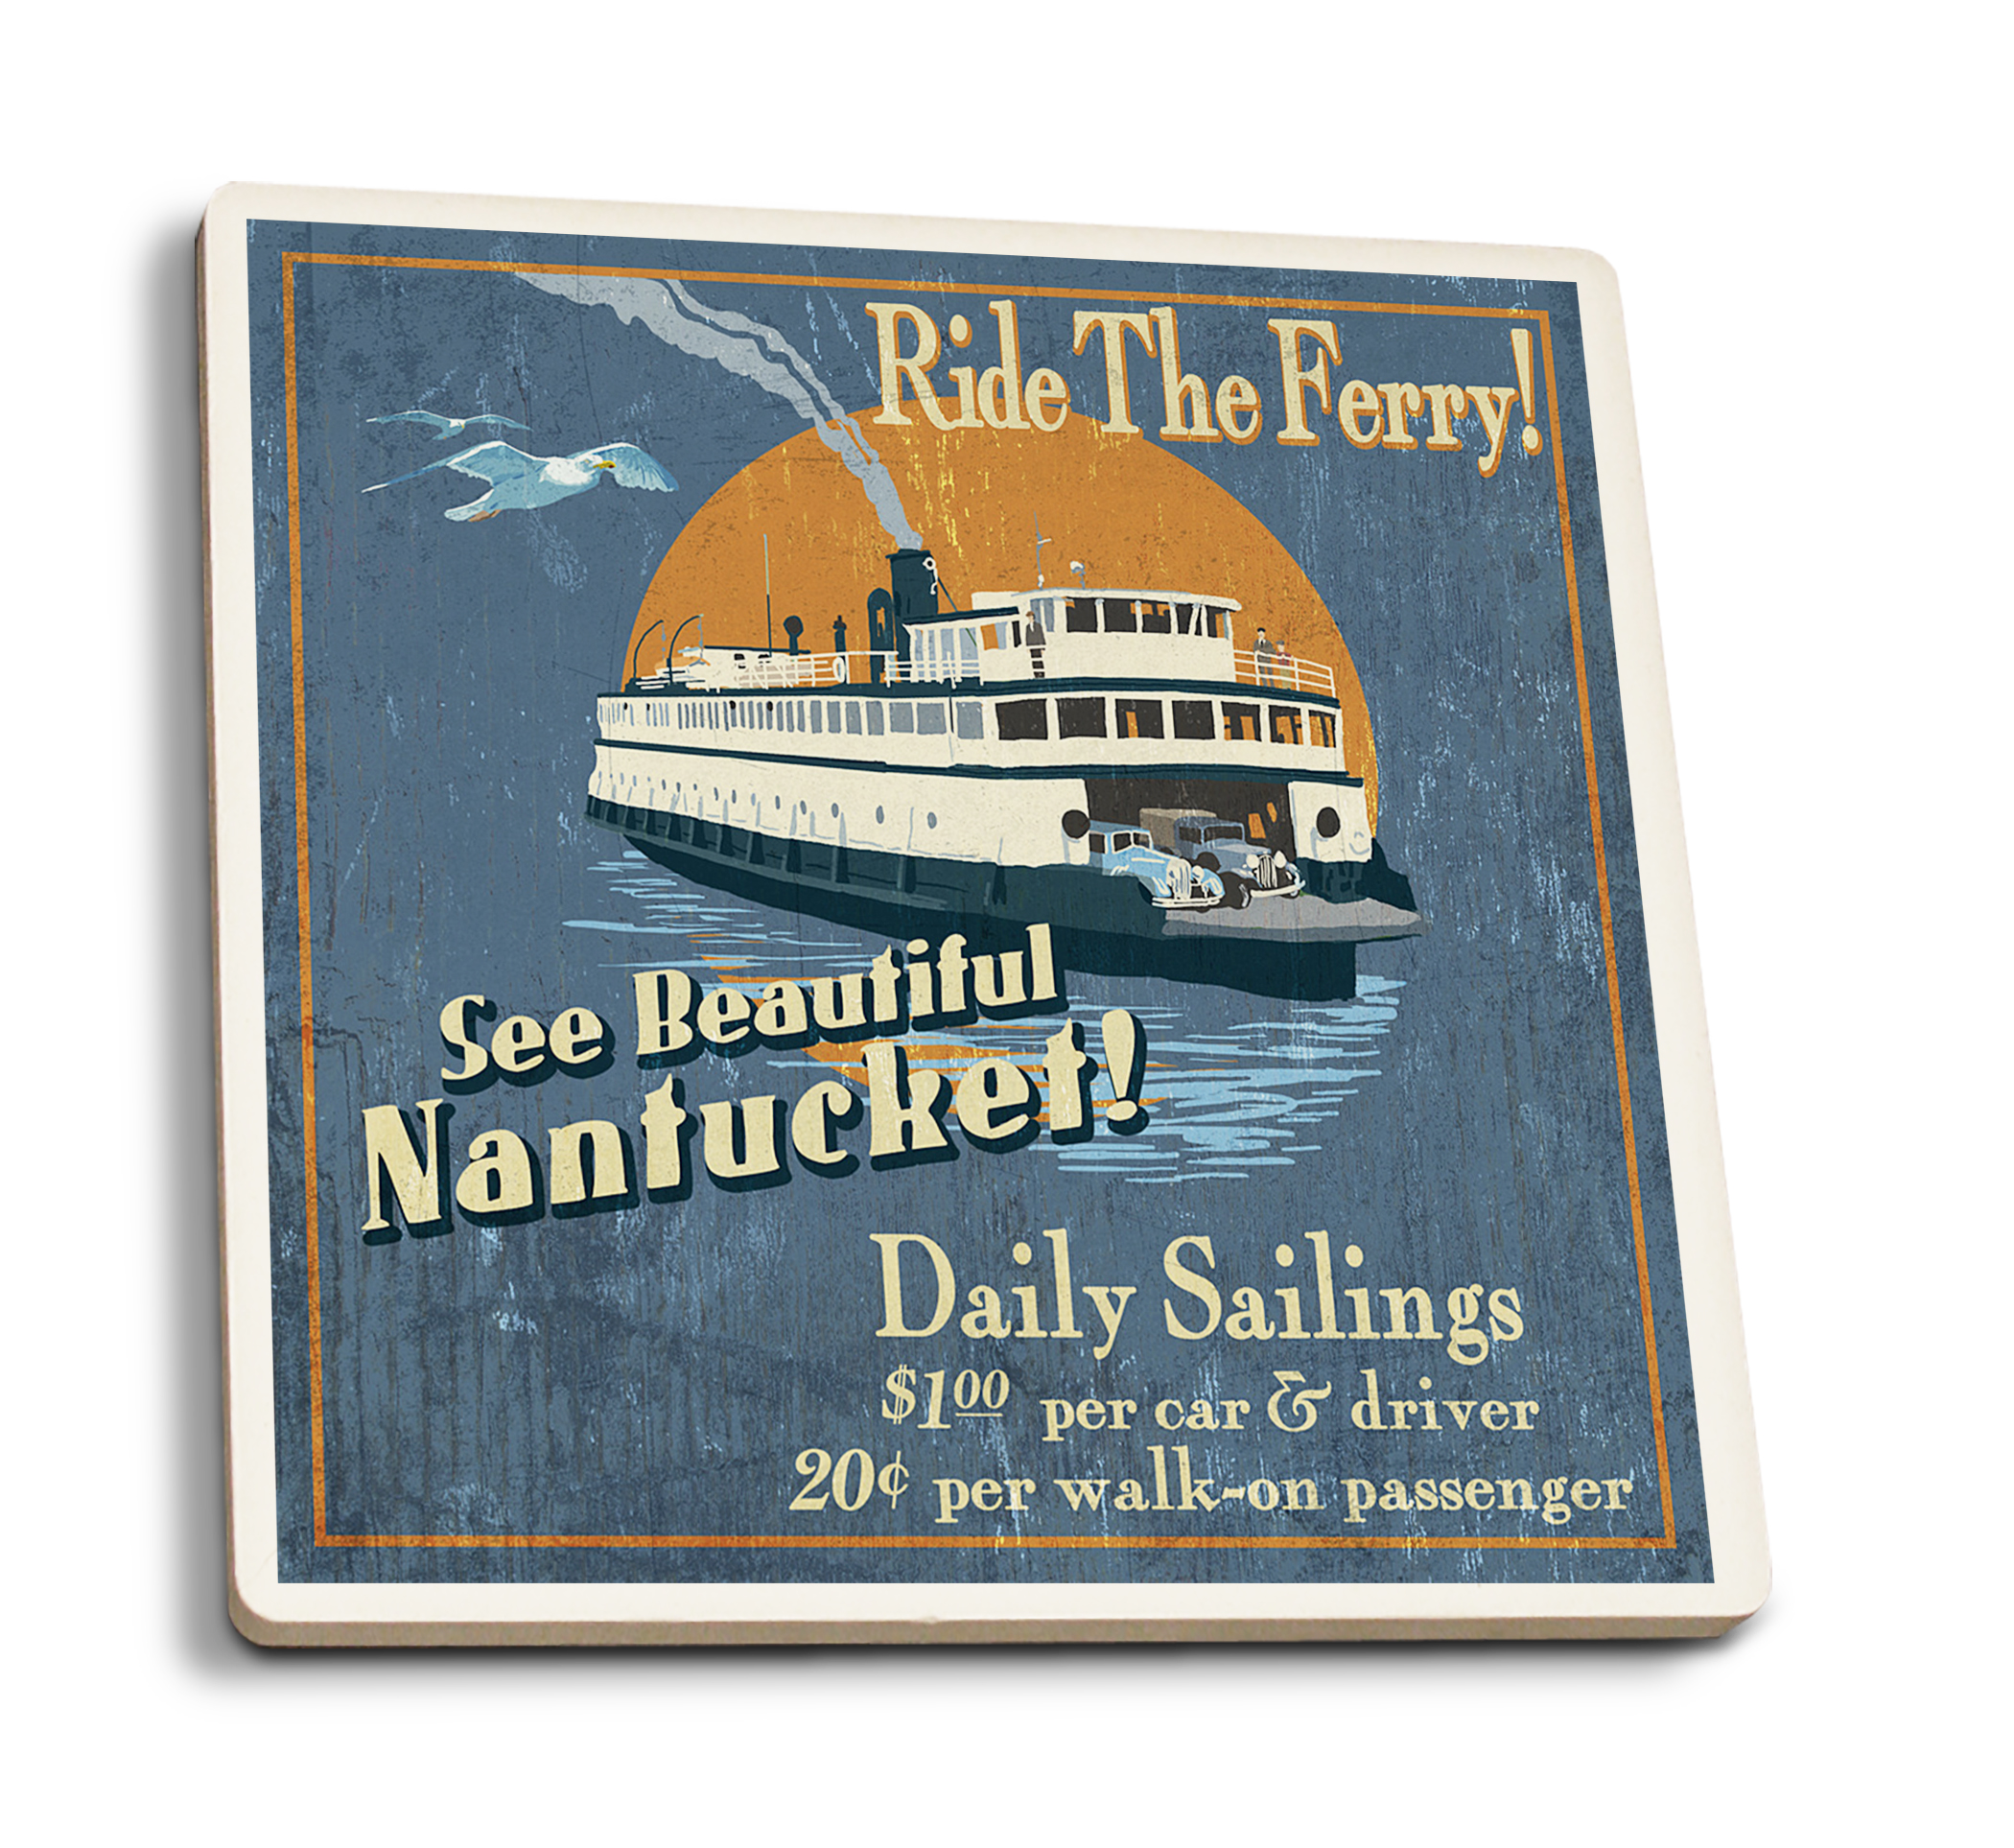 Nantucket, Massachusetts - Ferry Ride Vintage Sign - Lantern Press Artwork (Set of 4 Ceramic Coasters - Cork-backed, Absorbent)